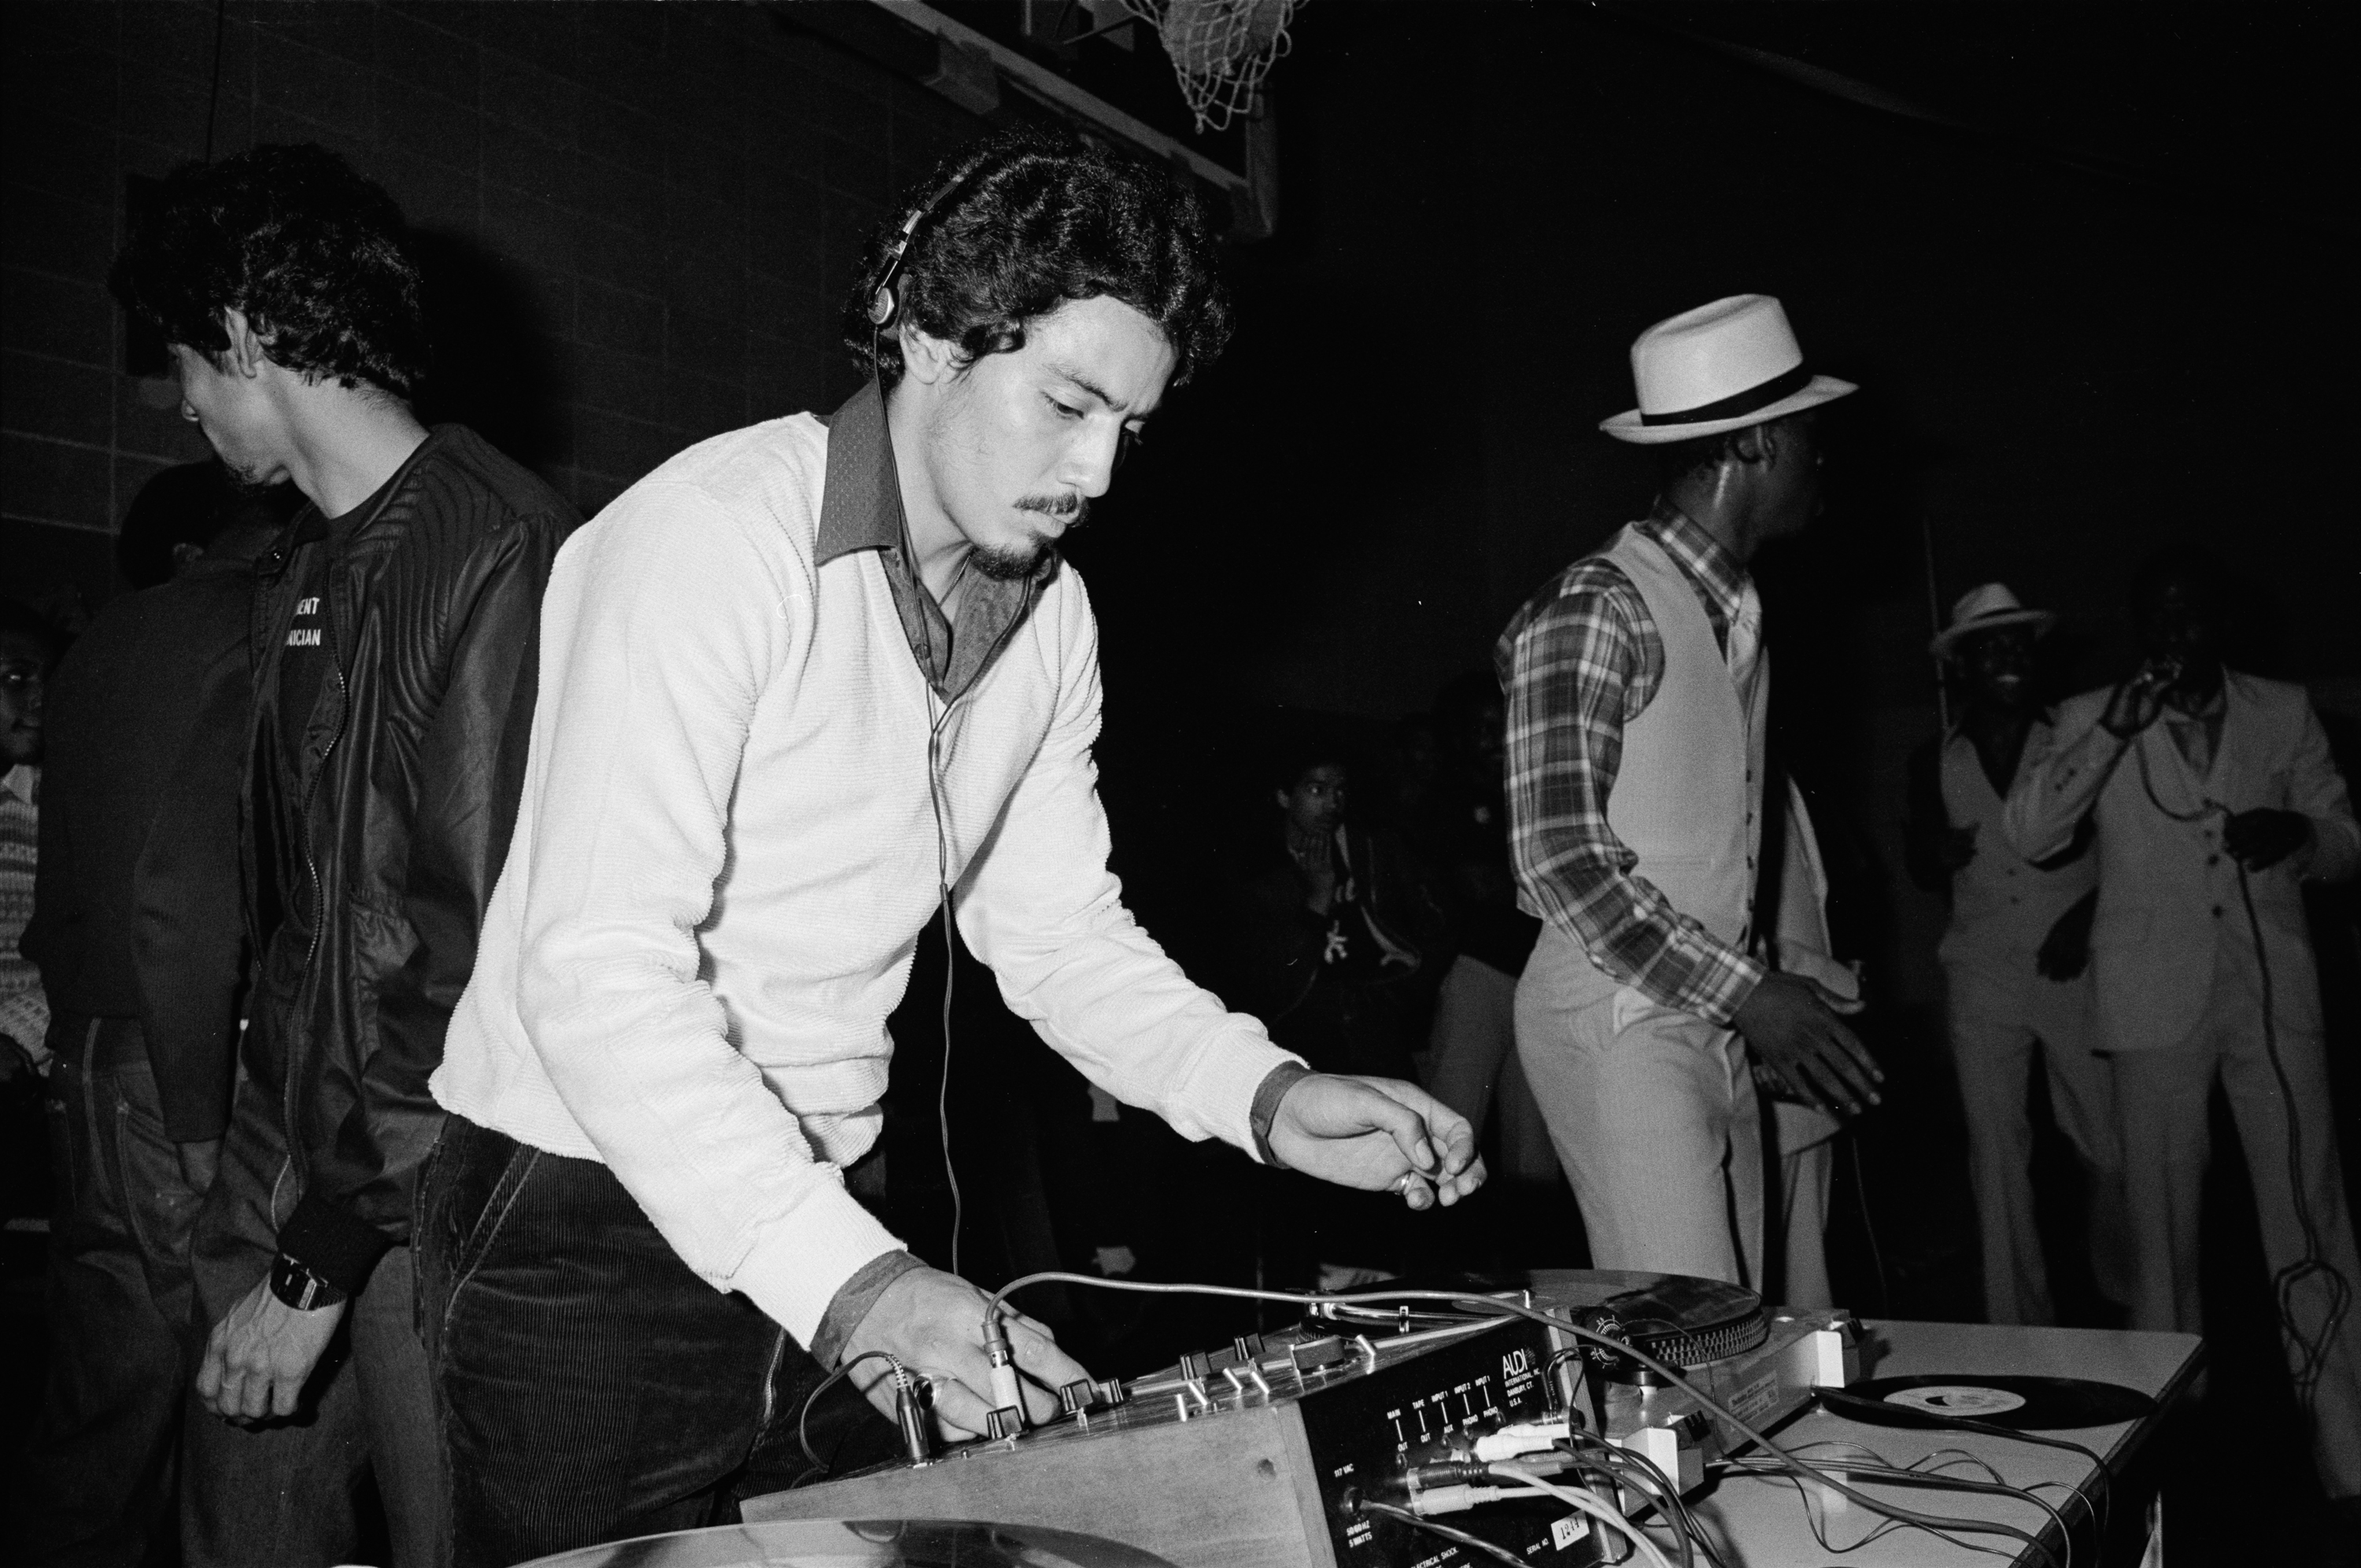 NPR Recognizes We've Been Here Since Day 1 in 'A Latino History of Hip Hop'